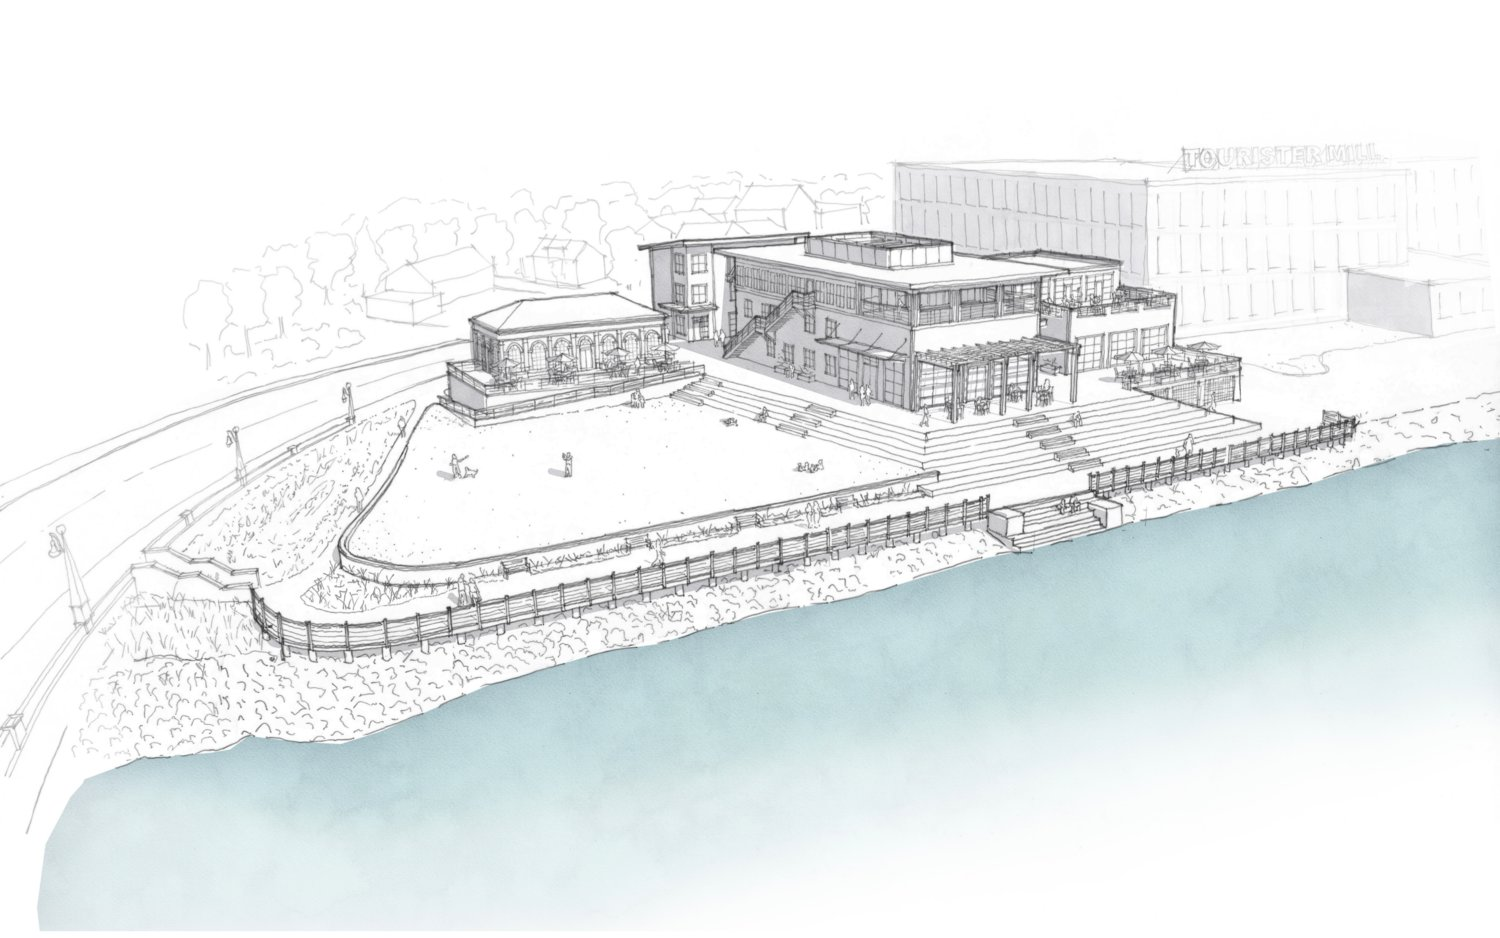 A current architectural drawing shows the proposed site plan at the town's gateway center in North Warren. The site includes at least two buildings, a terrace, riverwalk and public amenities.